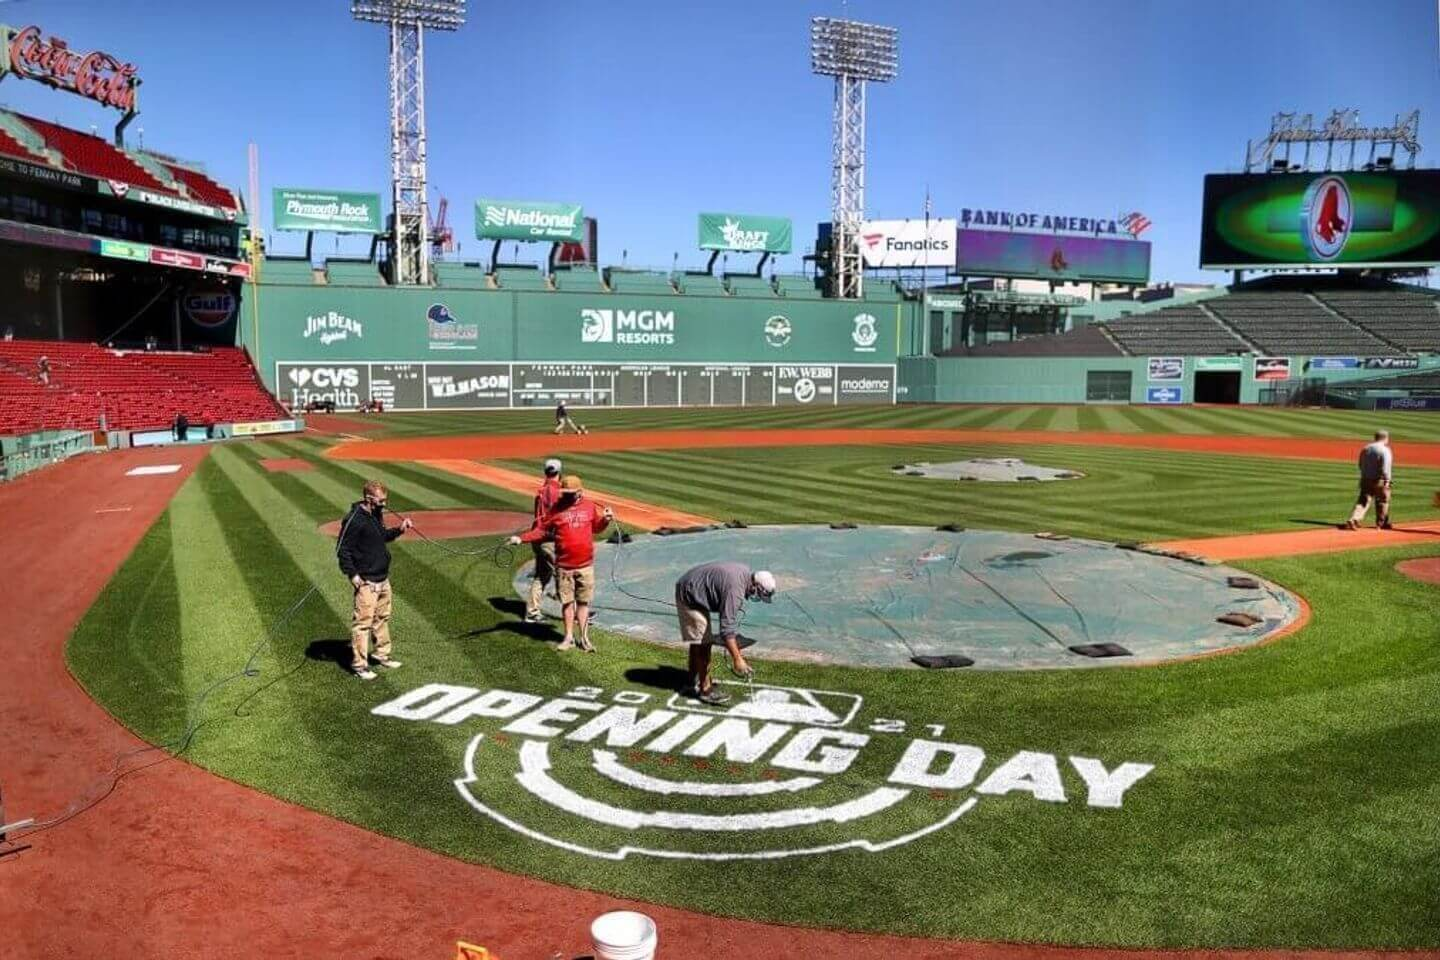 MLB Opening Day 2021: Live updates, schedule, scores, TV channels for the today's lineup of games